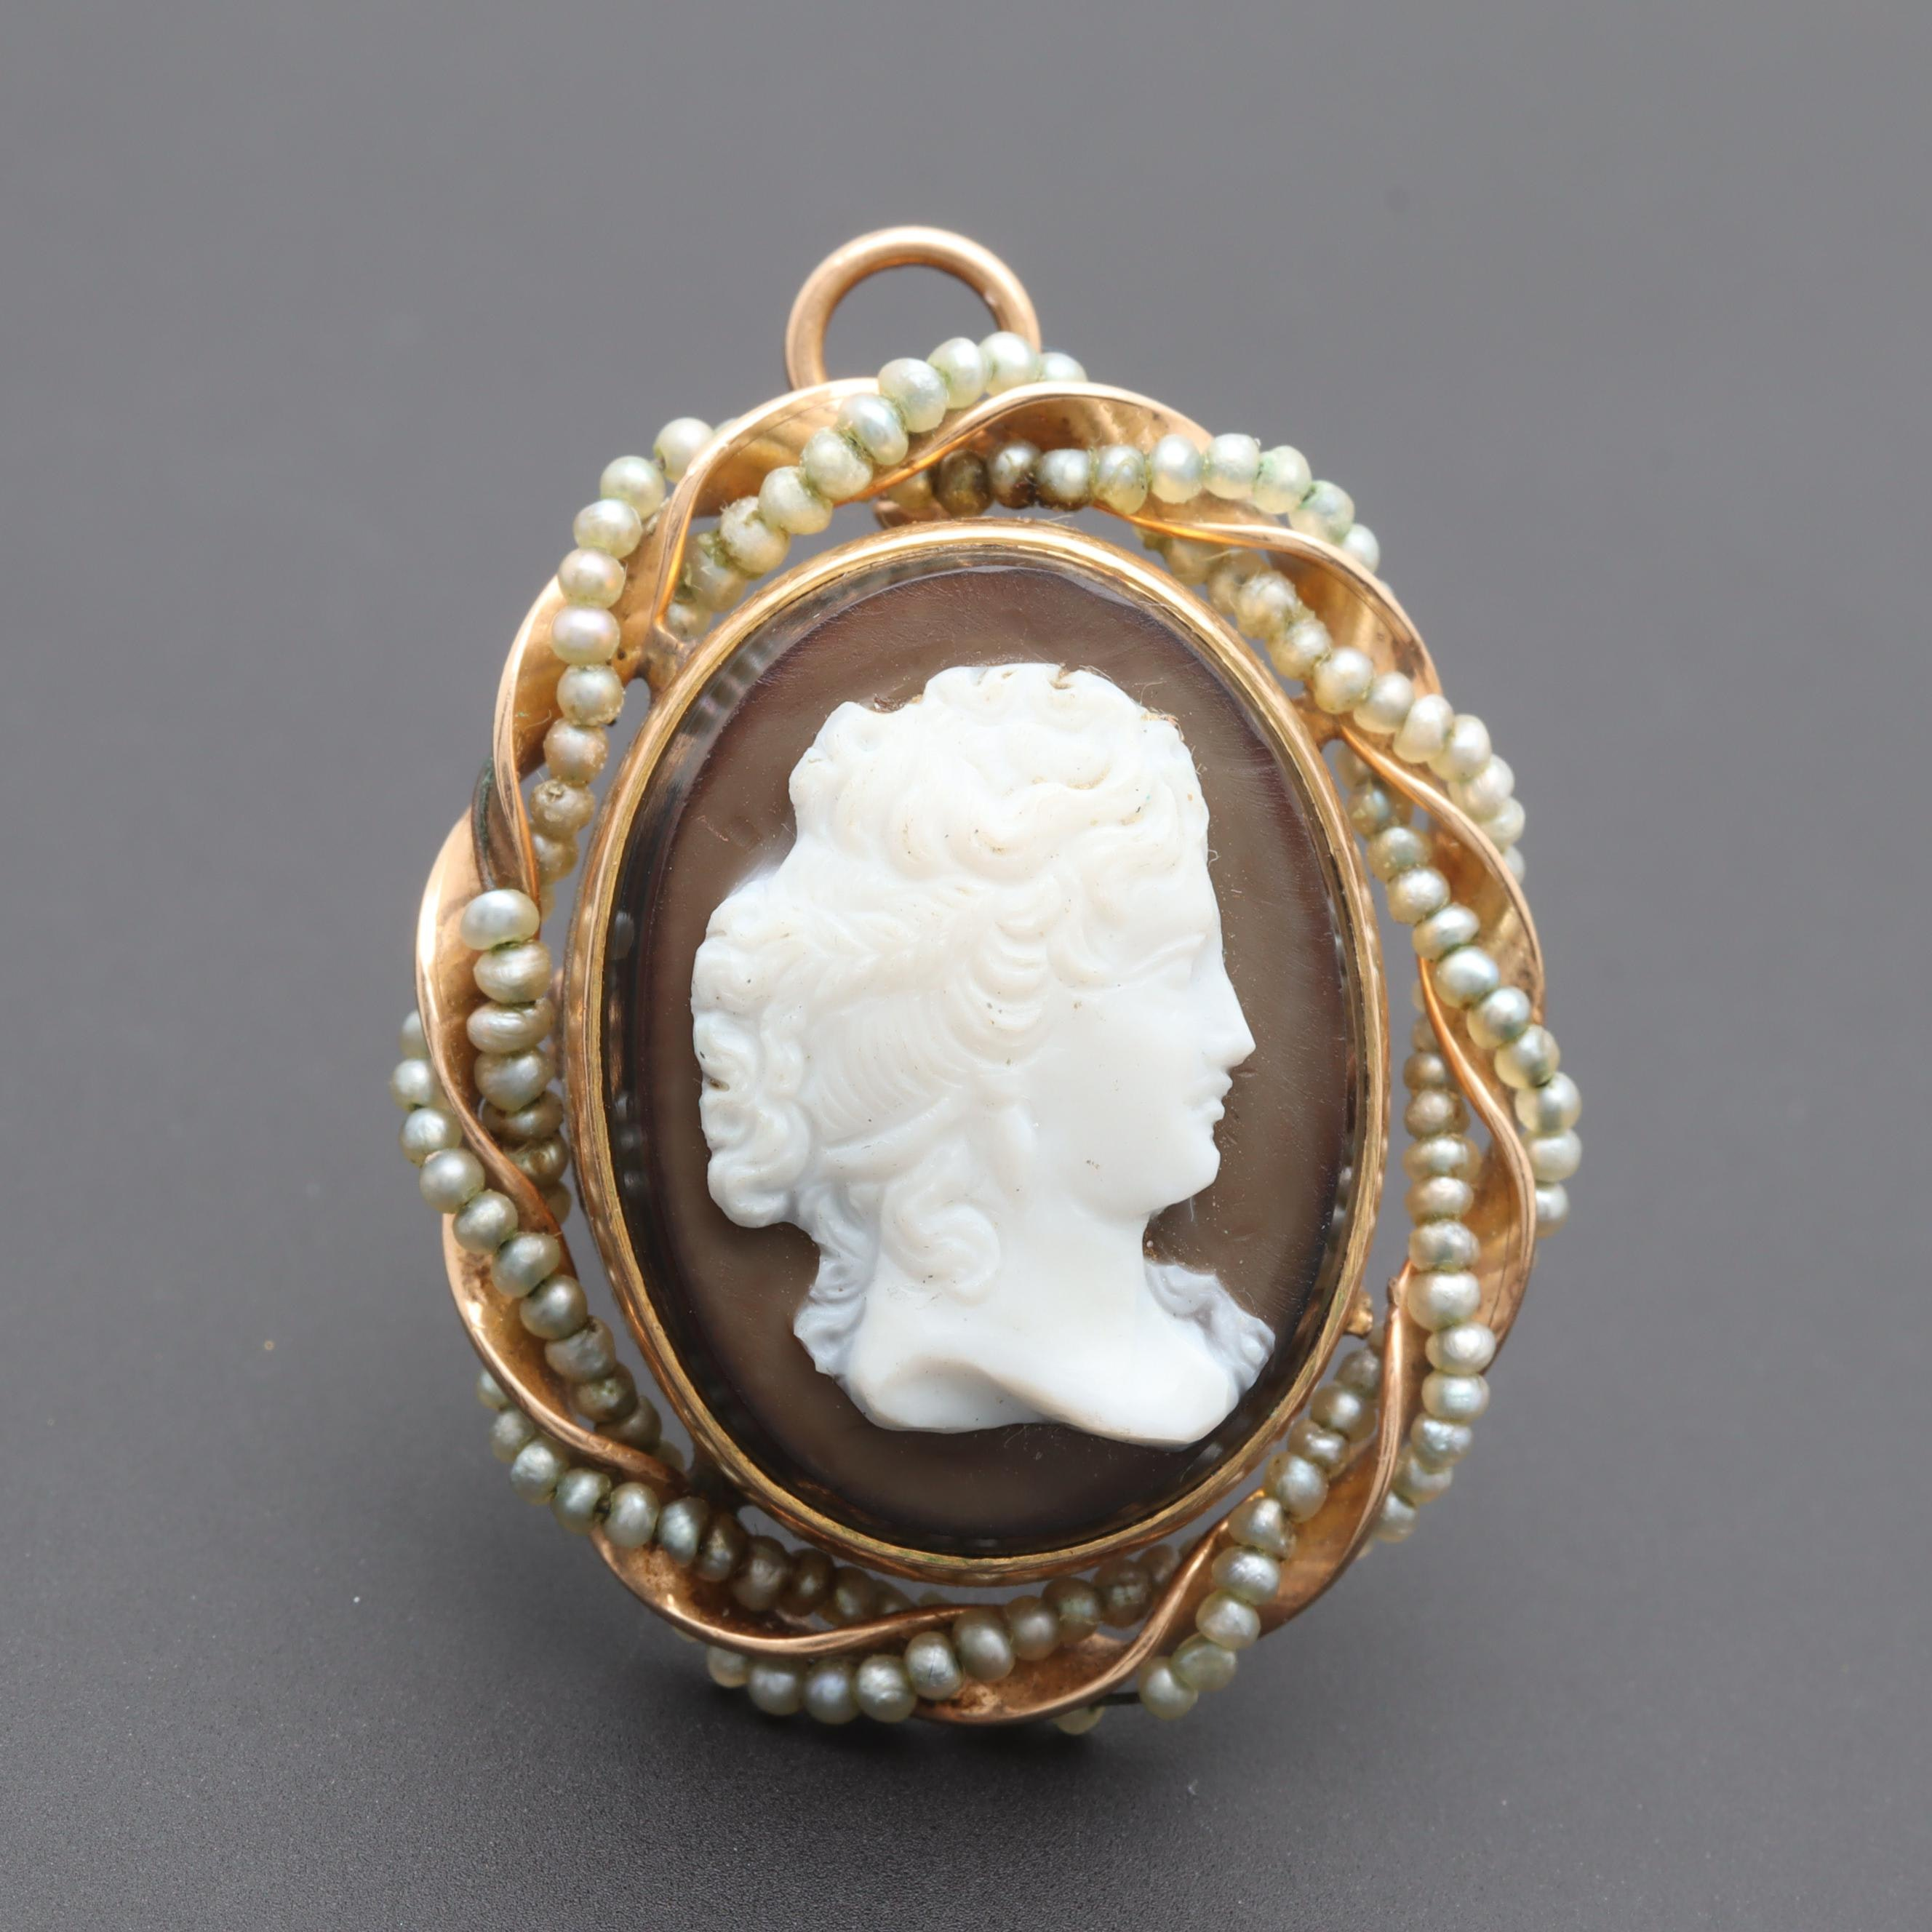 Antique 10K Yellow Gold Onyx Cameo Converter Brooch